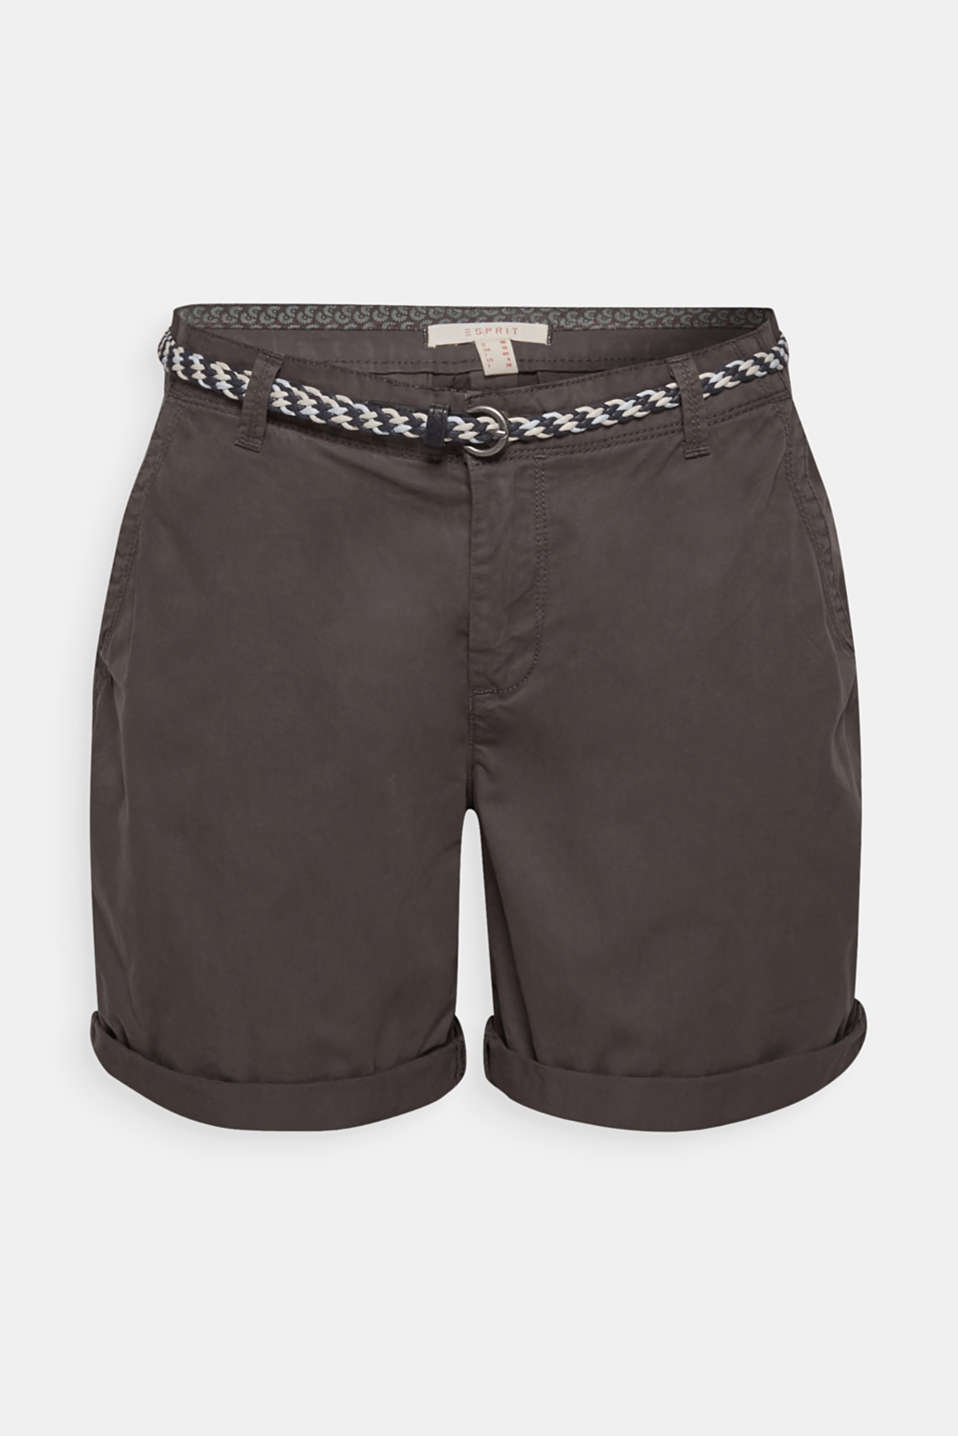 Shorts in a garment-washed look, 100% cotton, DARK GREY, detail image number 7